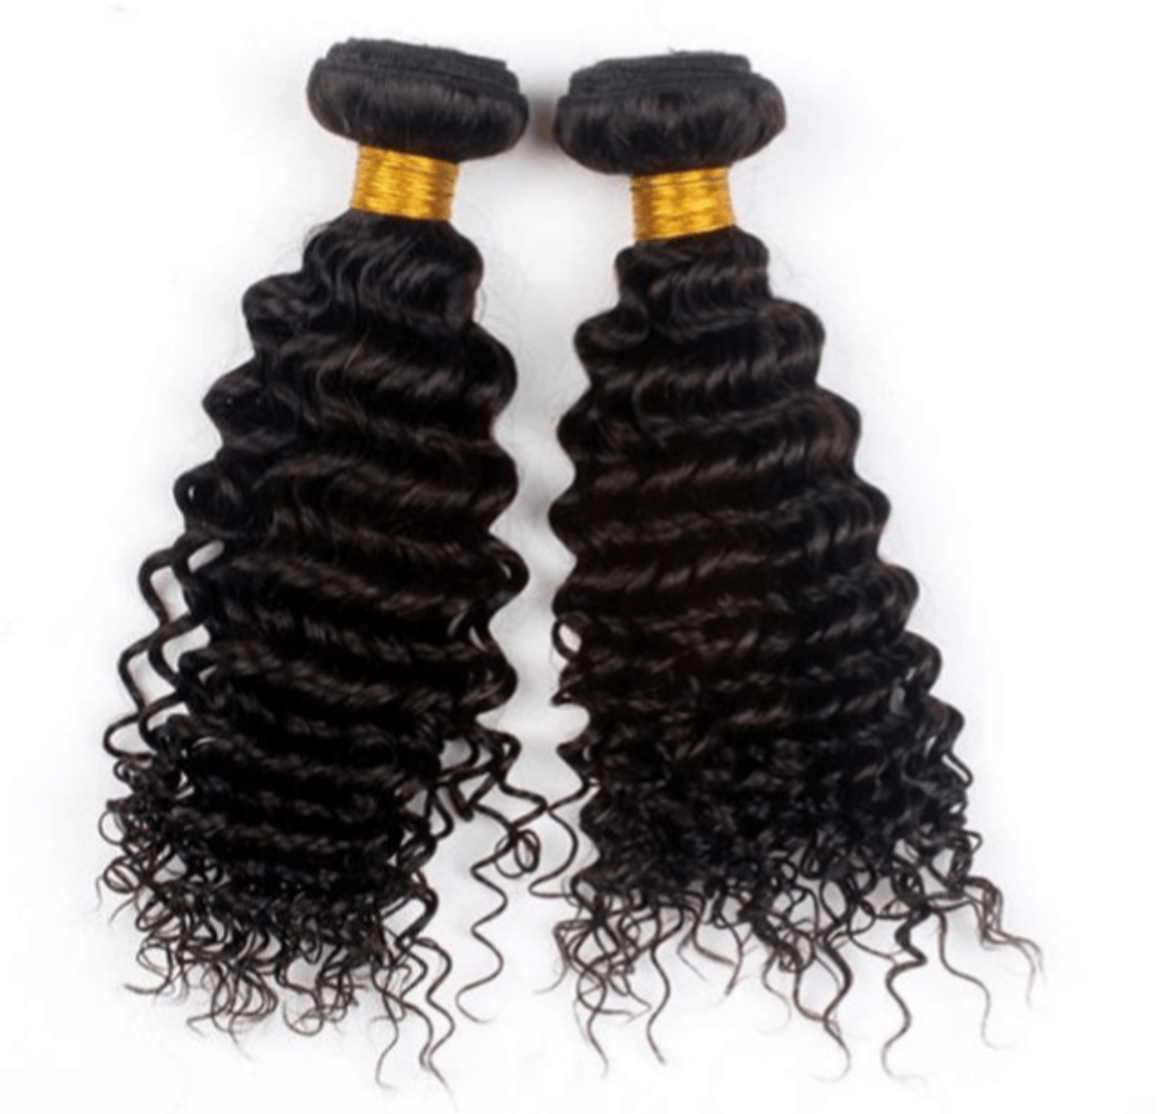 Two (2) Bundles of Silky Deep wave grade 10a - mslhair